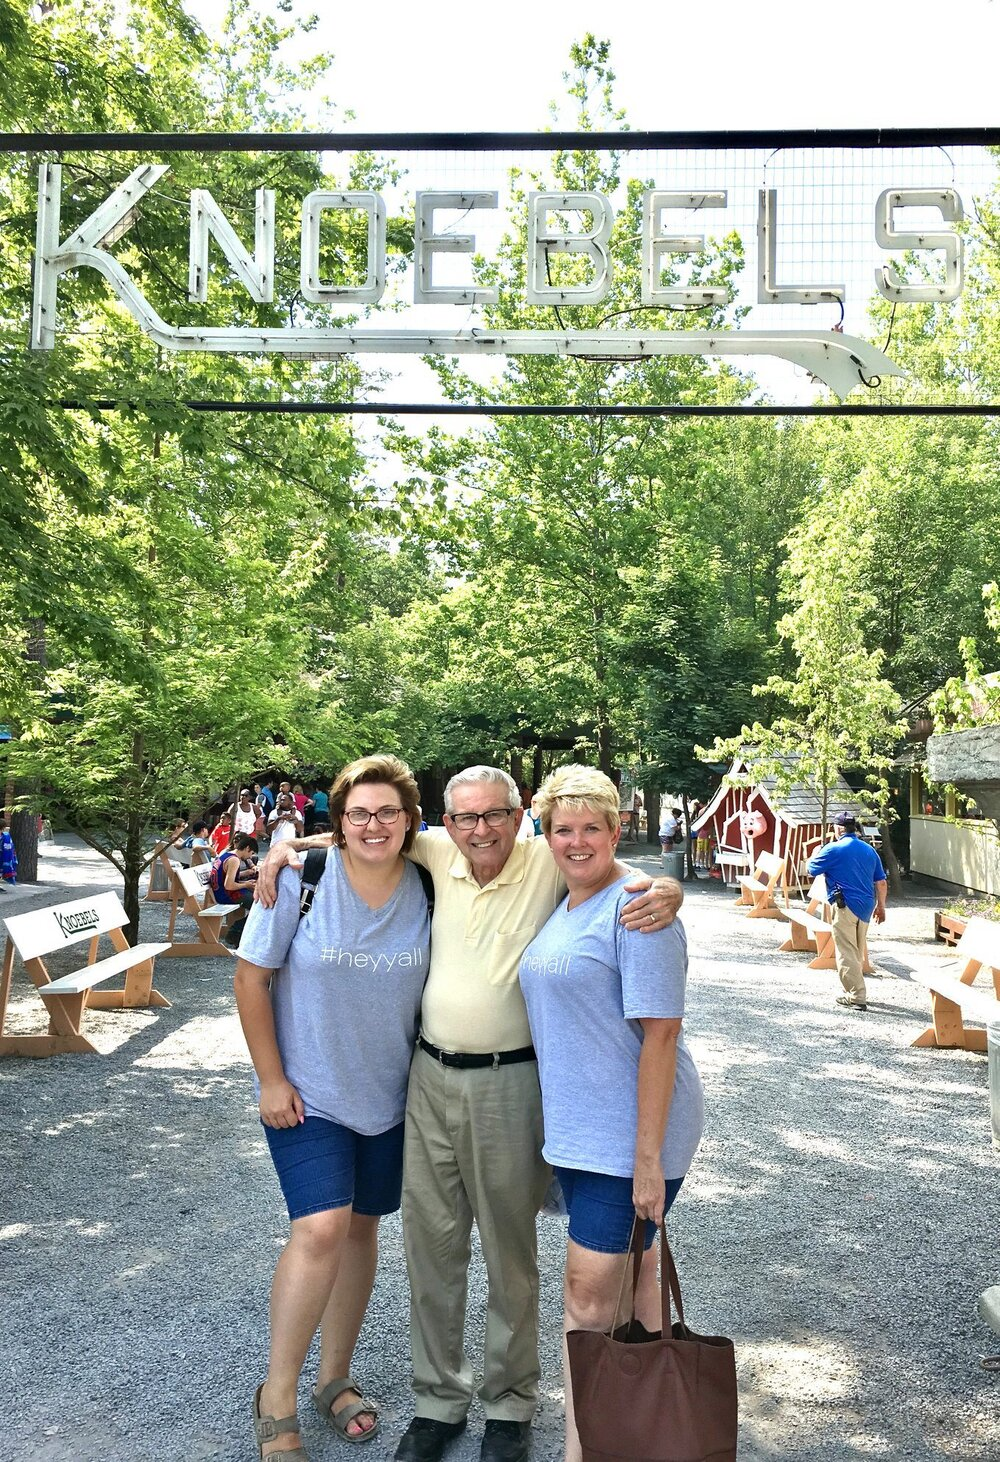 Coolest Amusement Park in the Northeast || Knoebels in Elysburg, Pennsylvania — Trippin' Southern Style